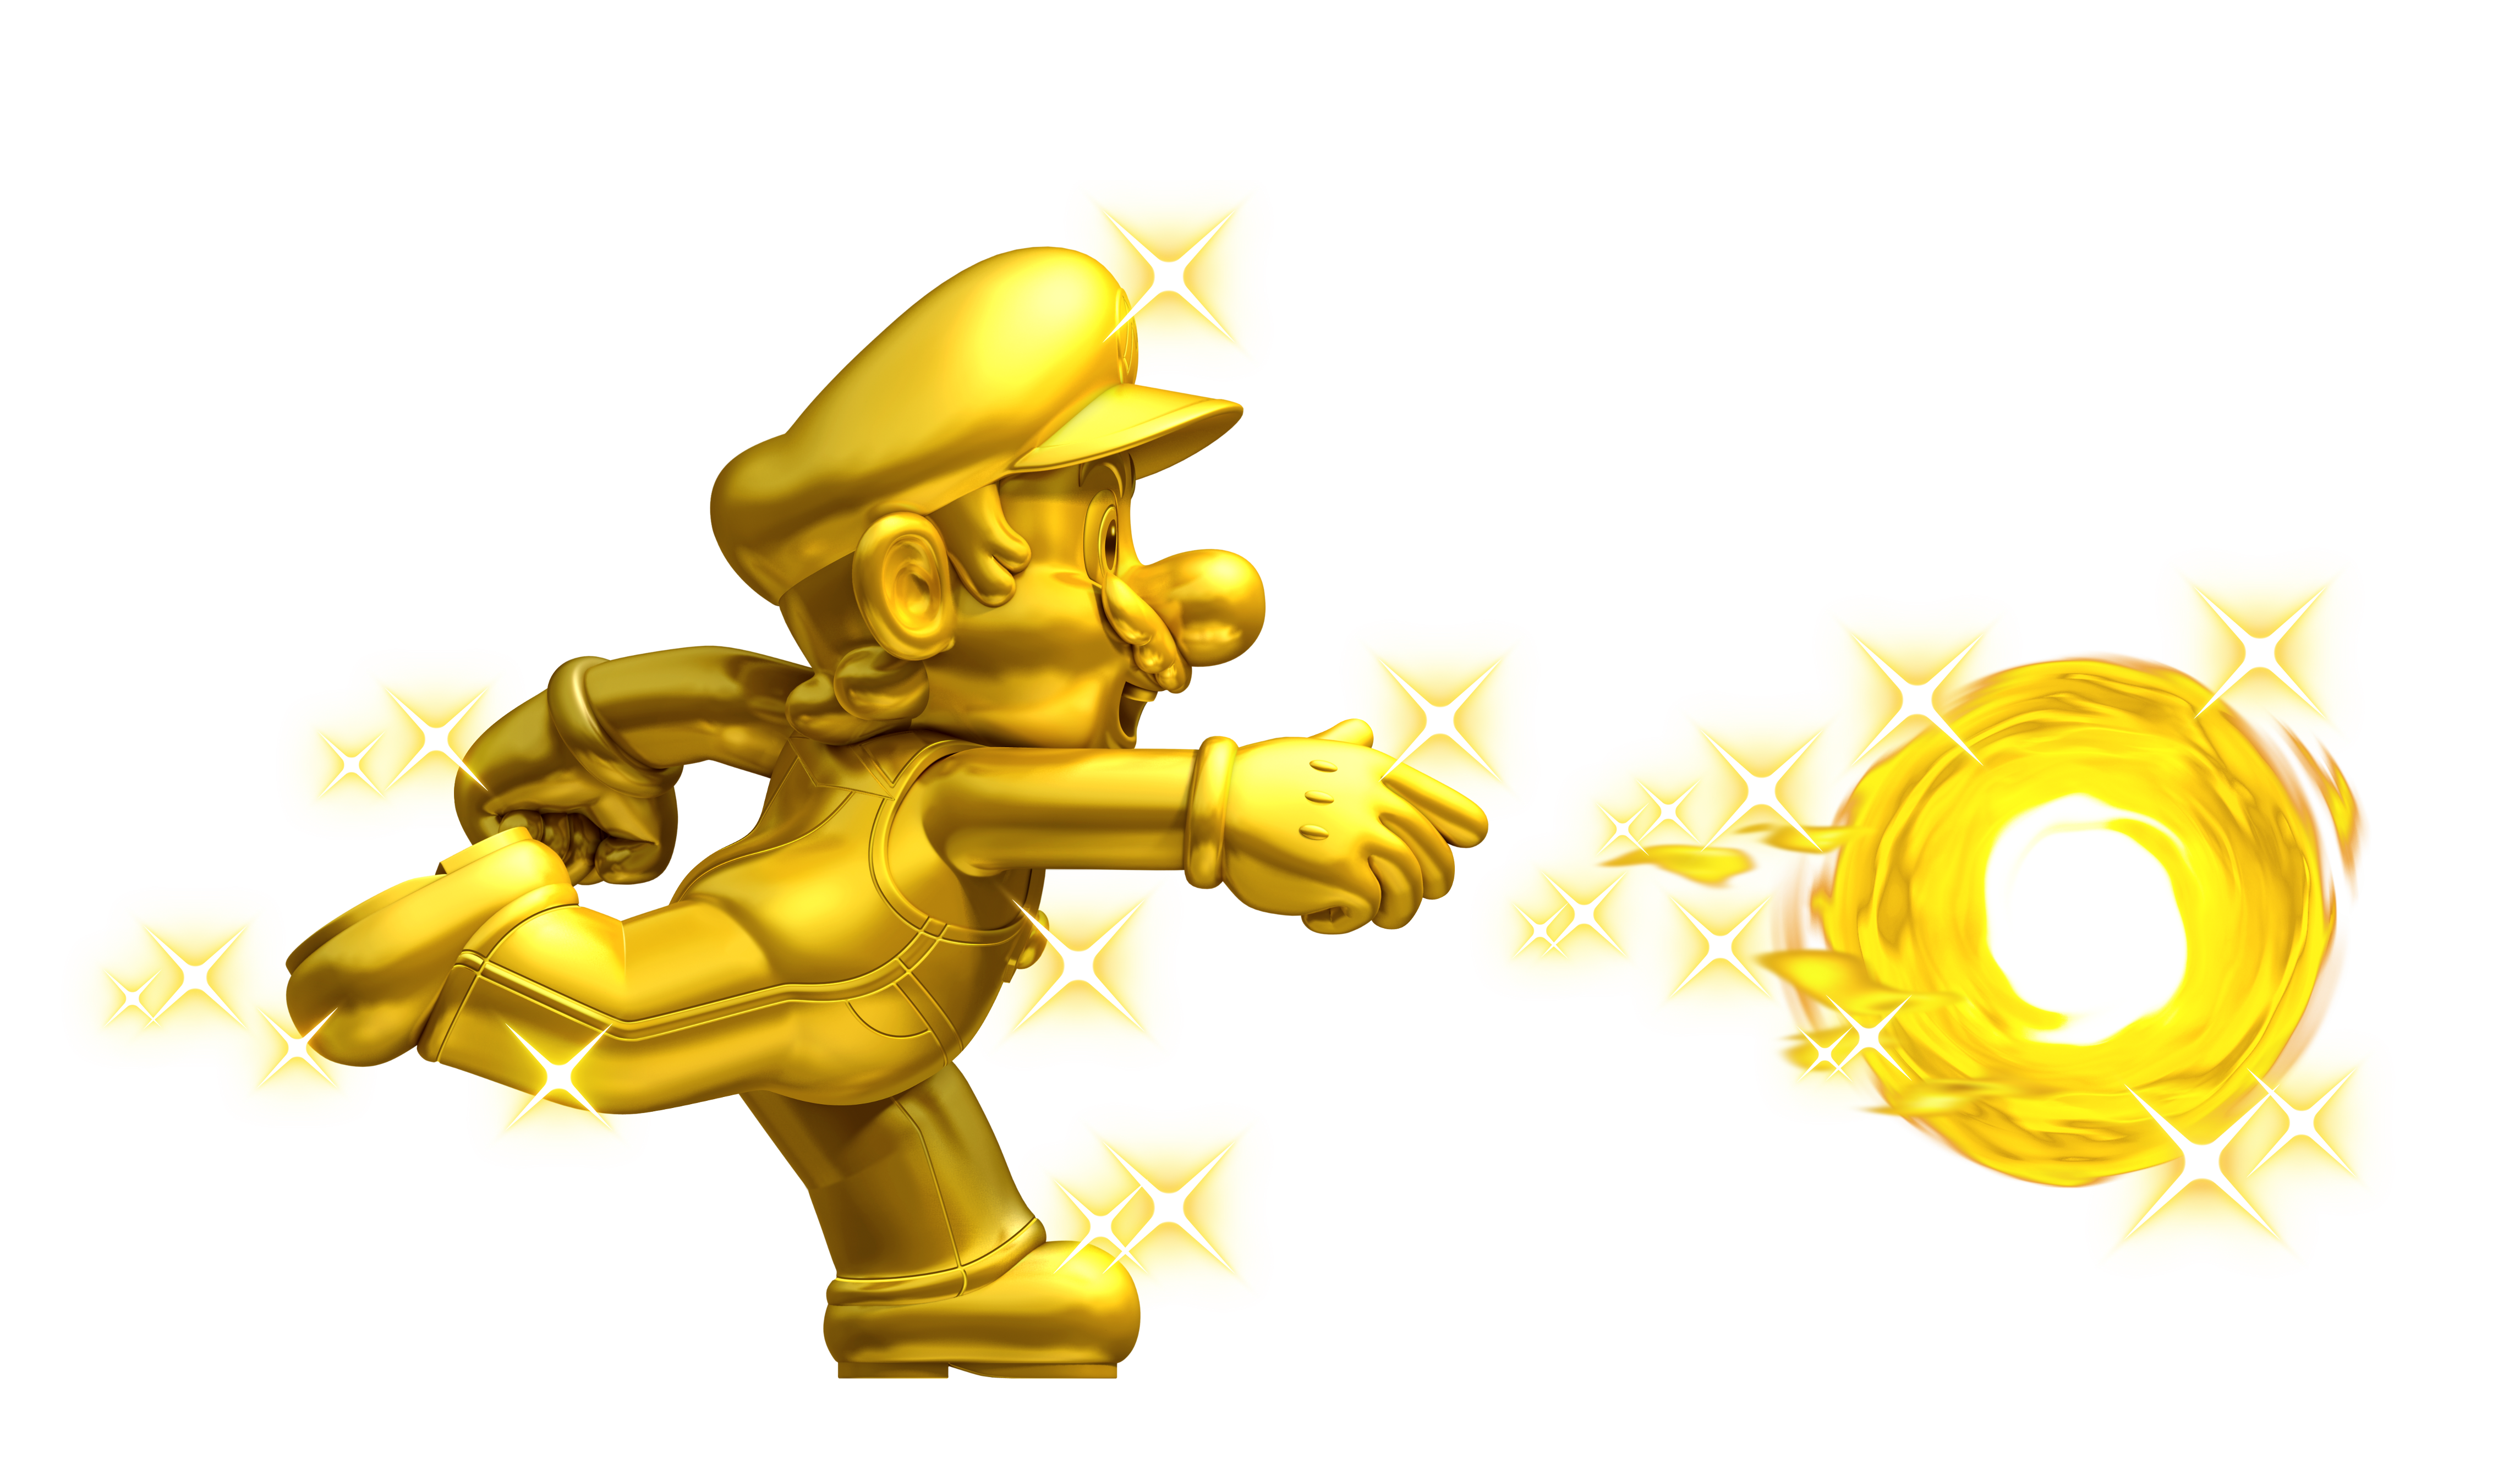 New super mario bros. Money on fire png